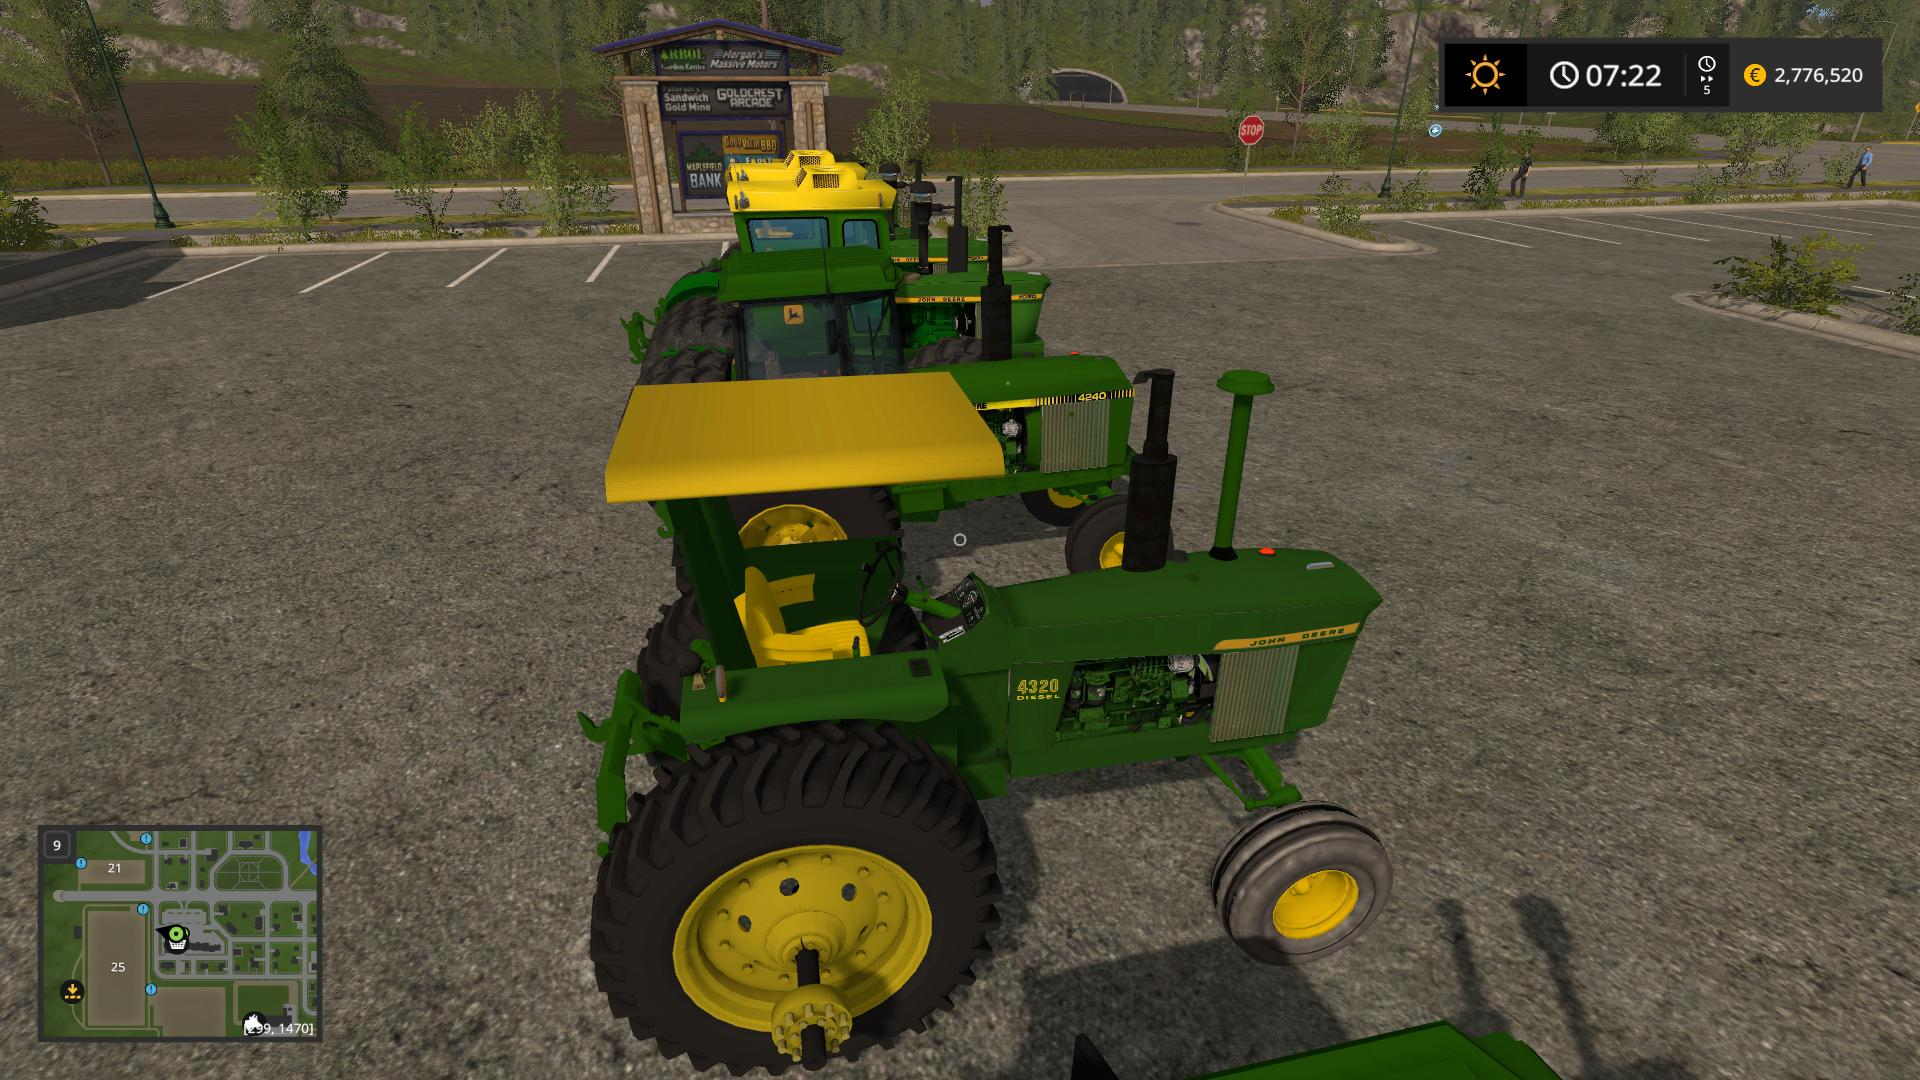 John Deere Old Series v1 0 0 - Modhub us